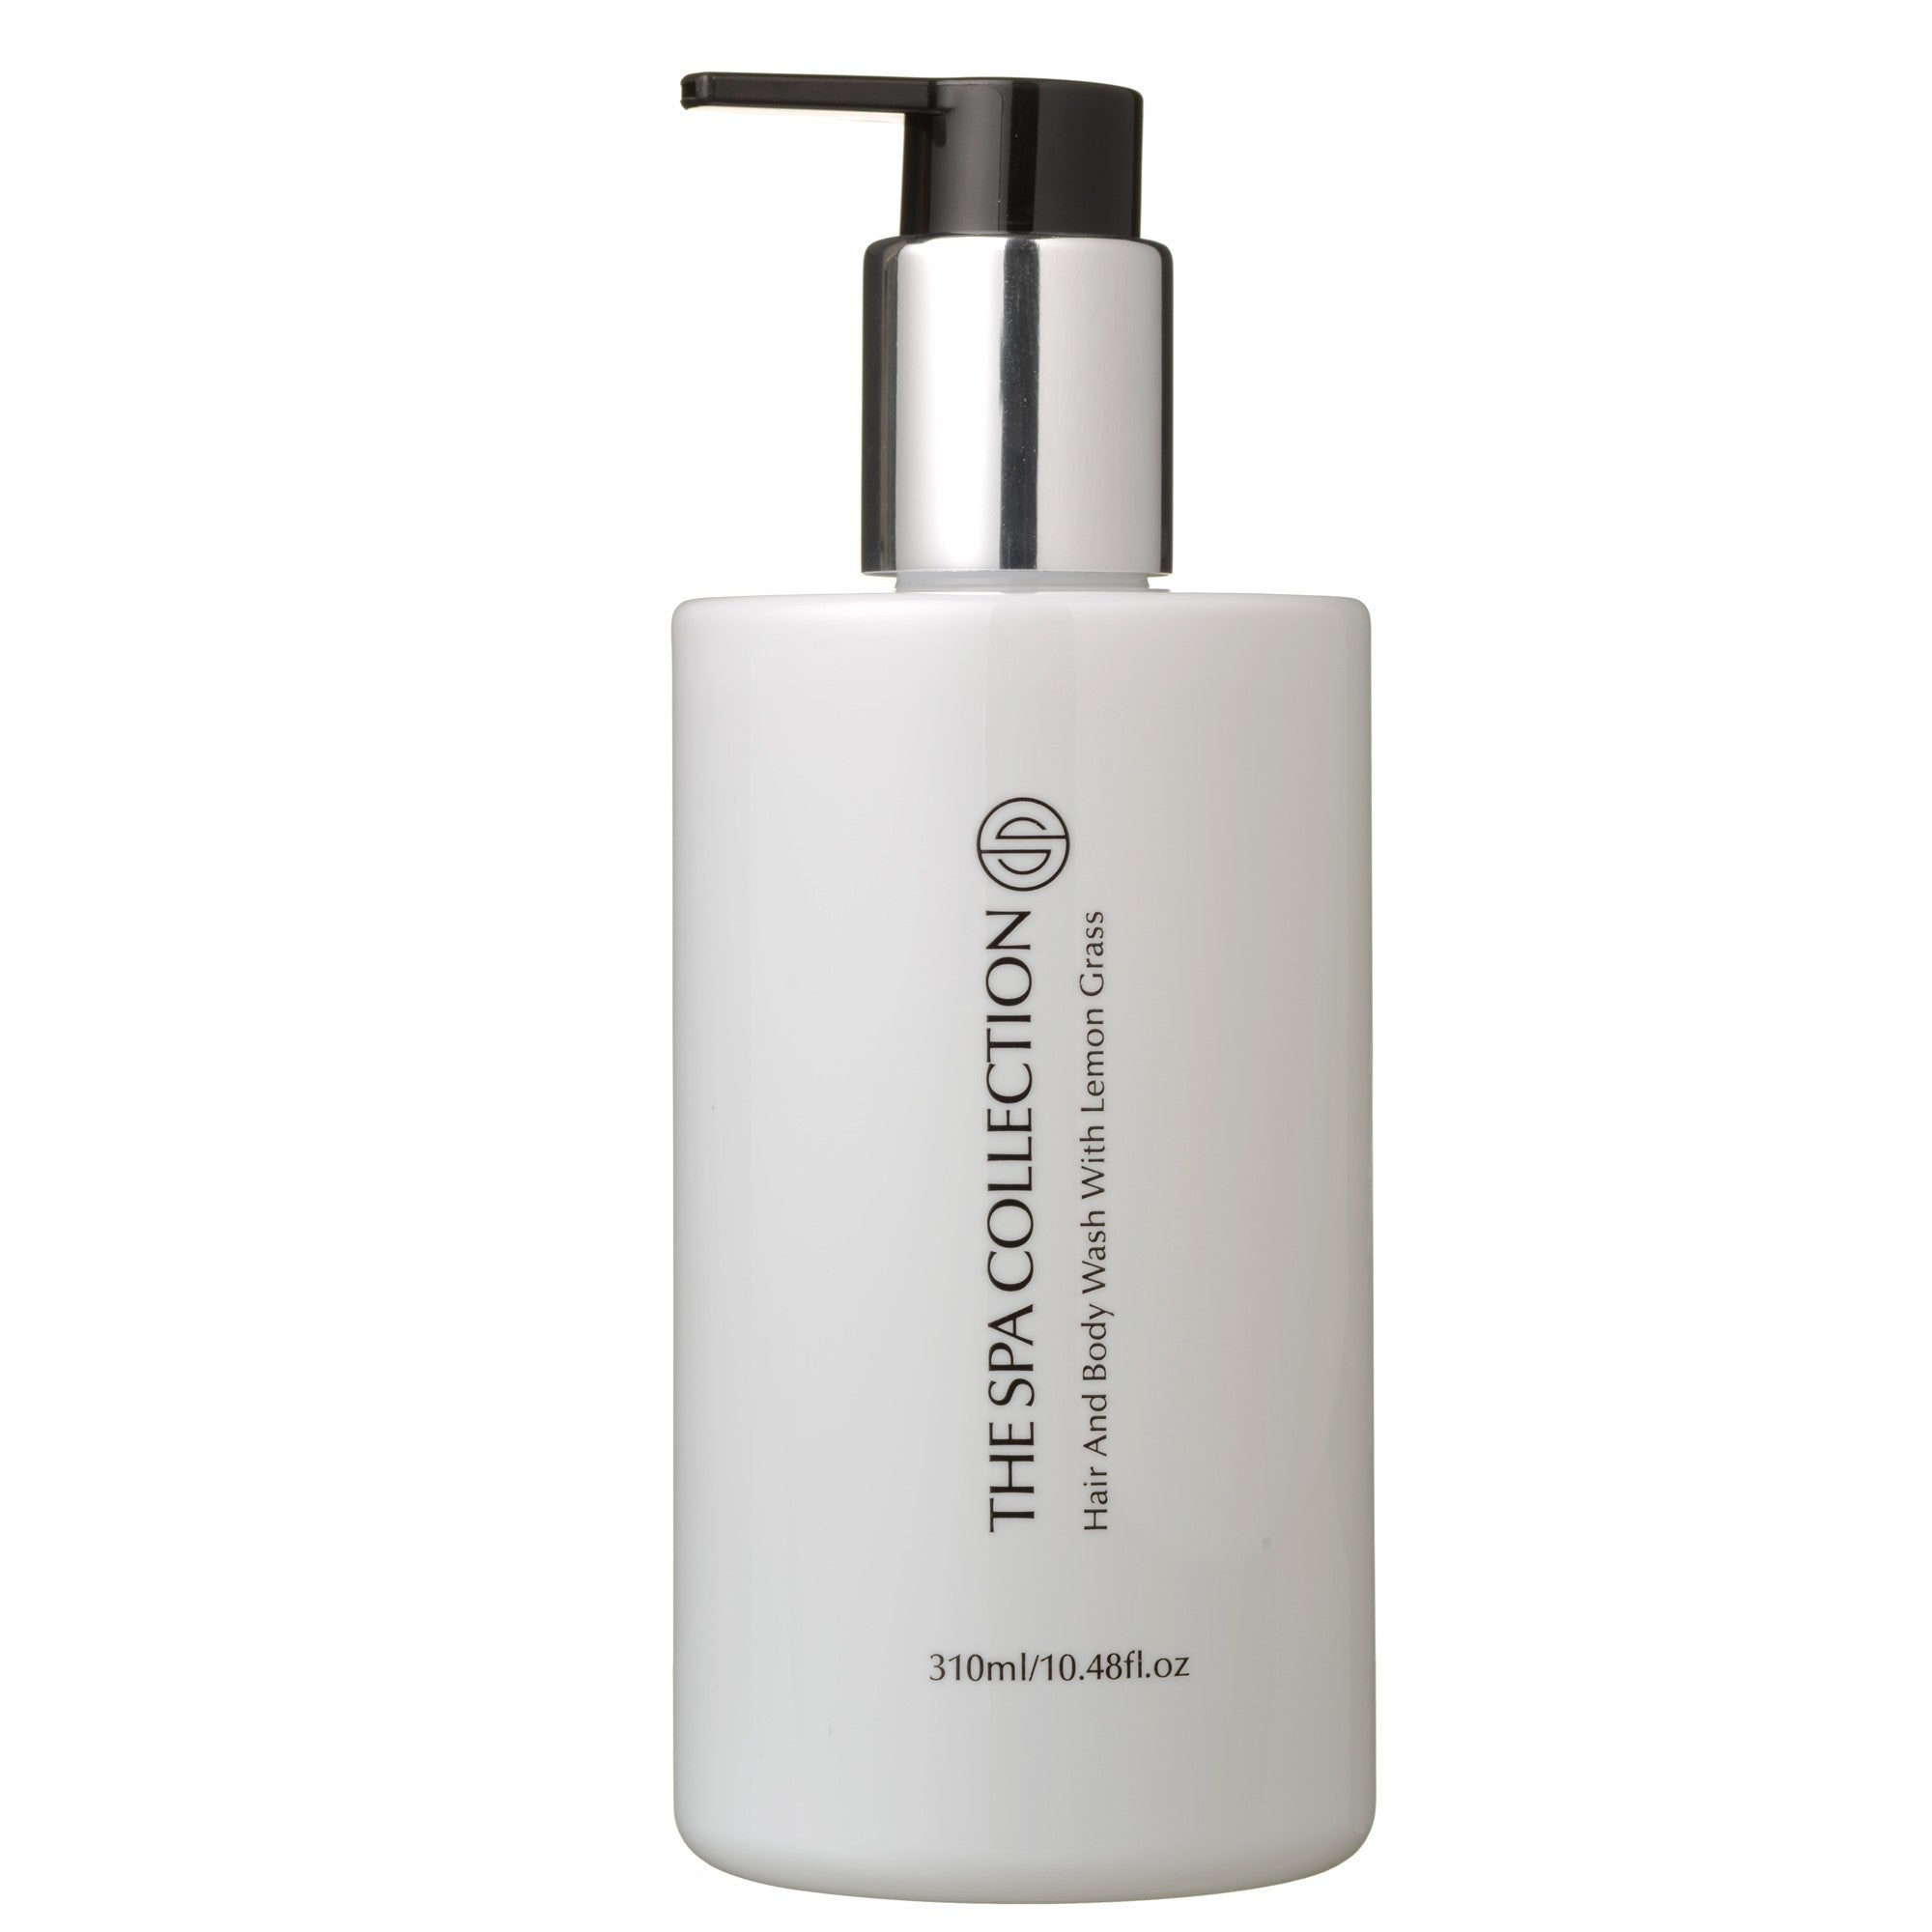 Hair & Body Wash Lemongrass 310 ml - The Spa Collection